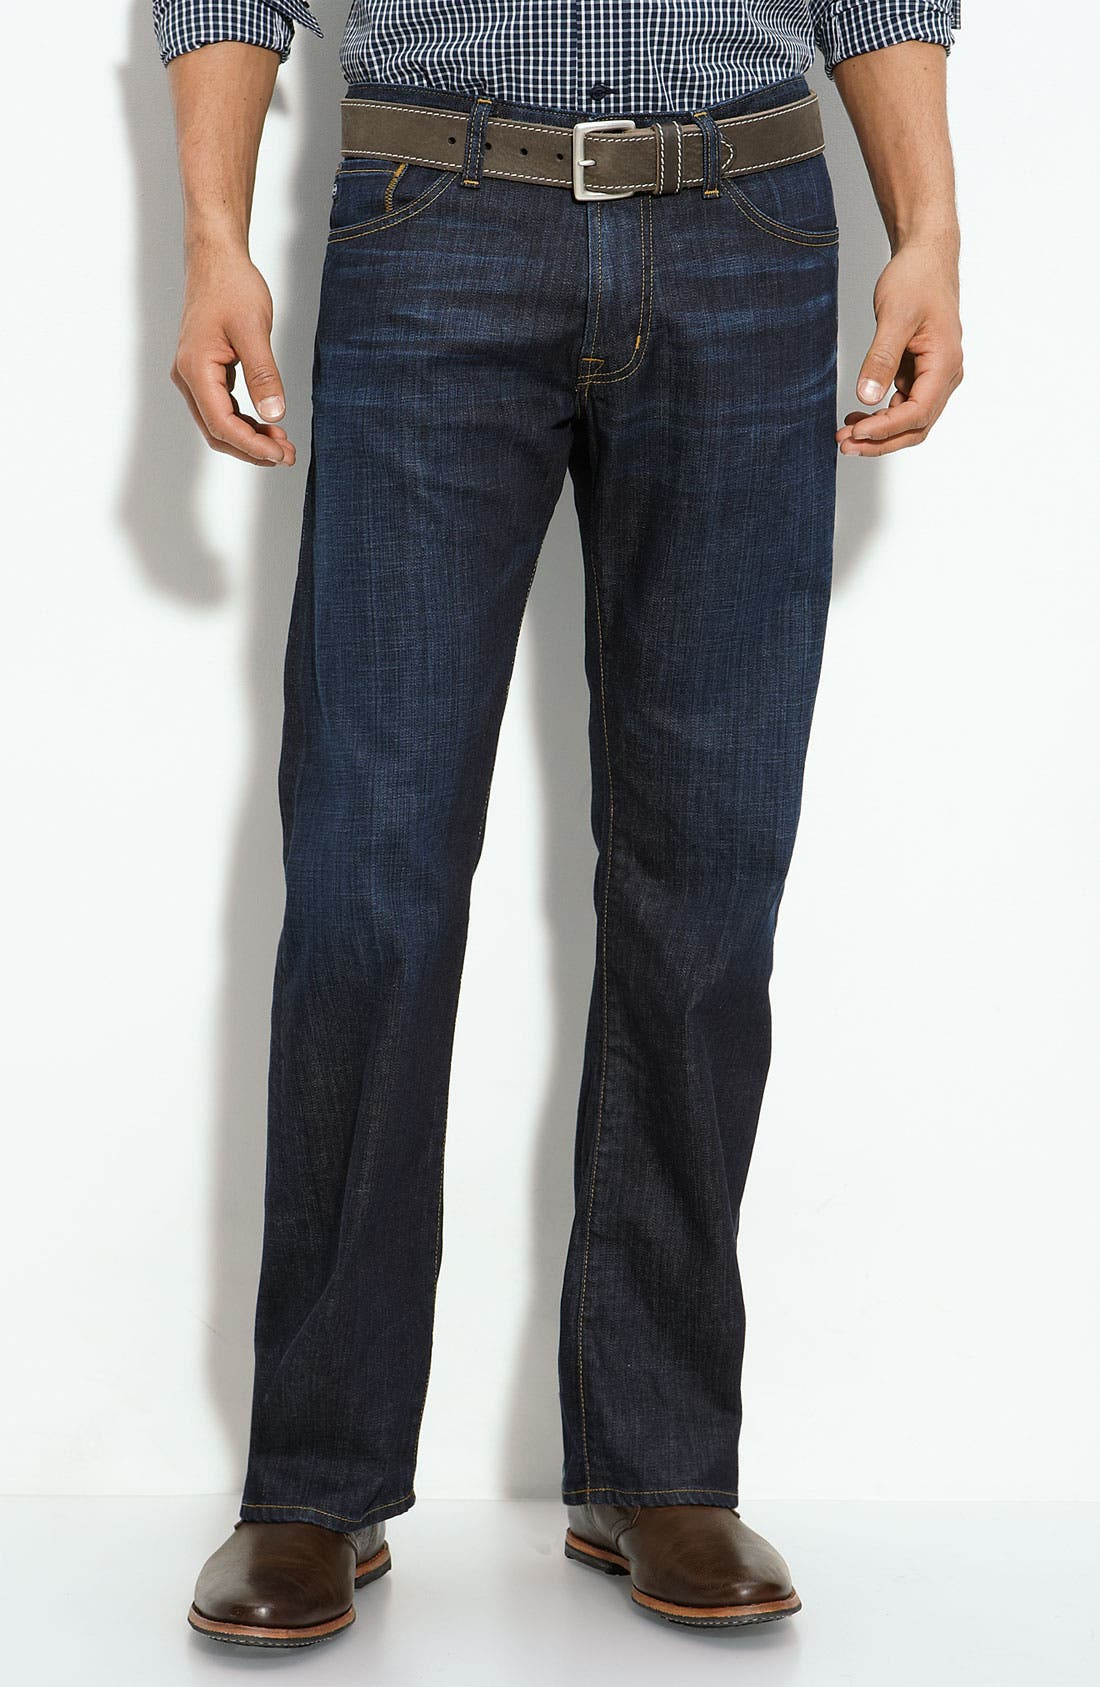 Jeans 'Hero' Relaxed Fit Jeans,                             Alternate thumbnail 2, color,                             403